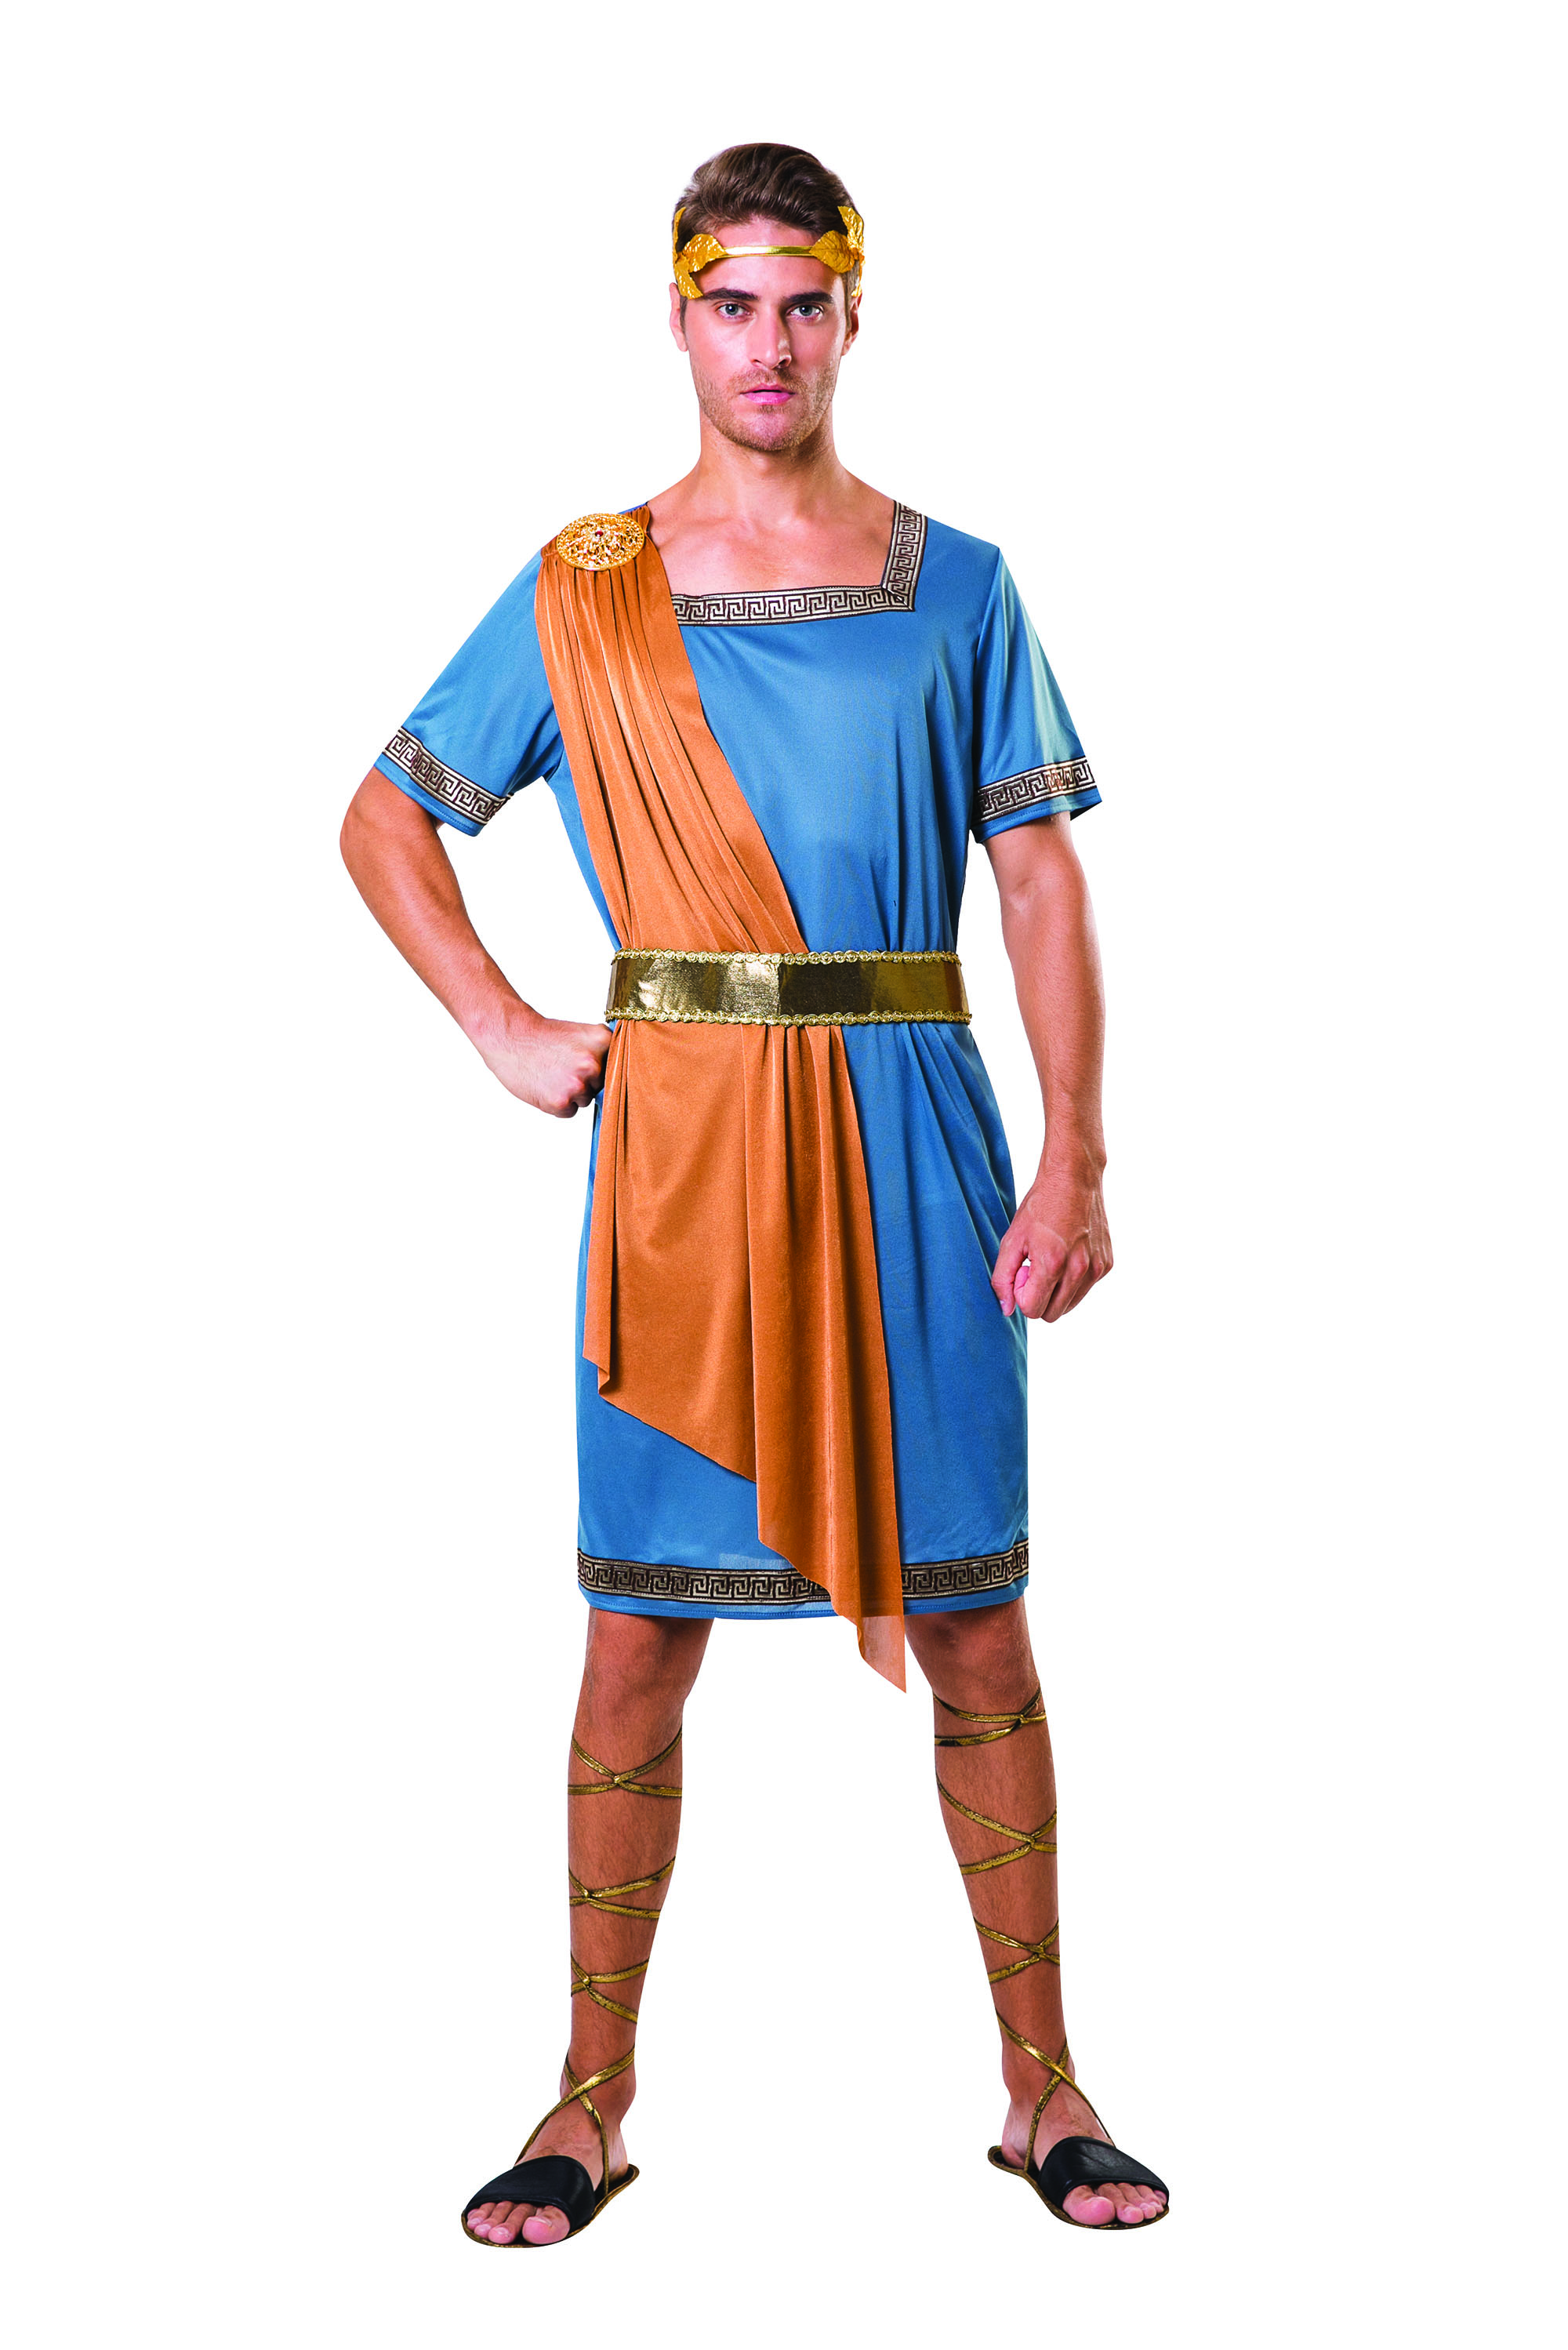 865f99091 Details about Mens Greek Emperor Toga Fancy Dress Costume Outfit Roman  Empire Party